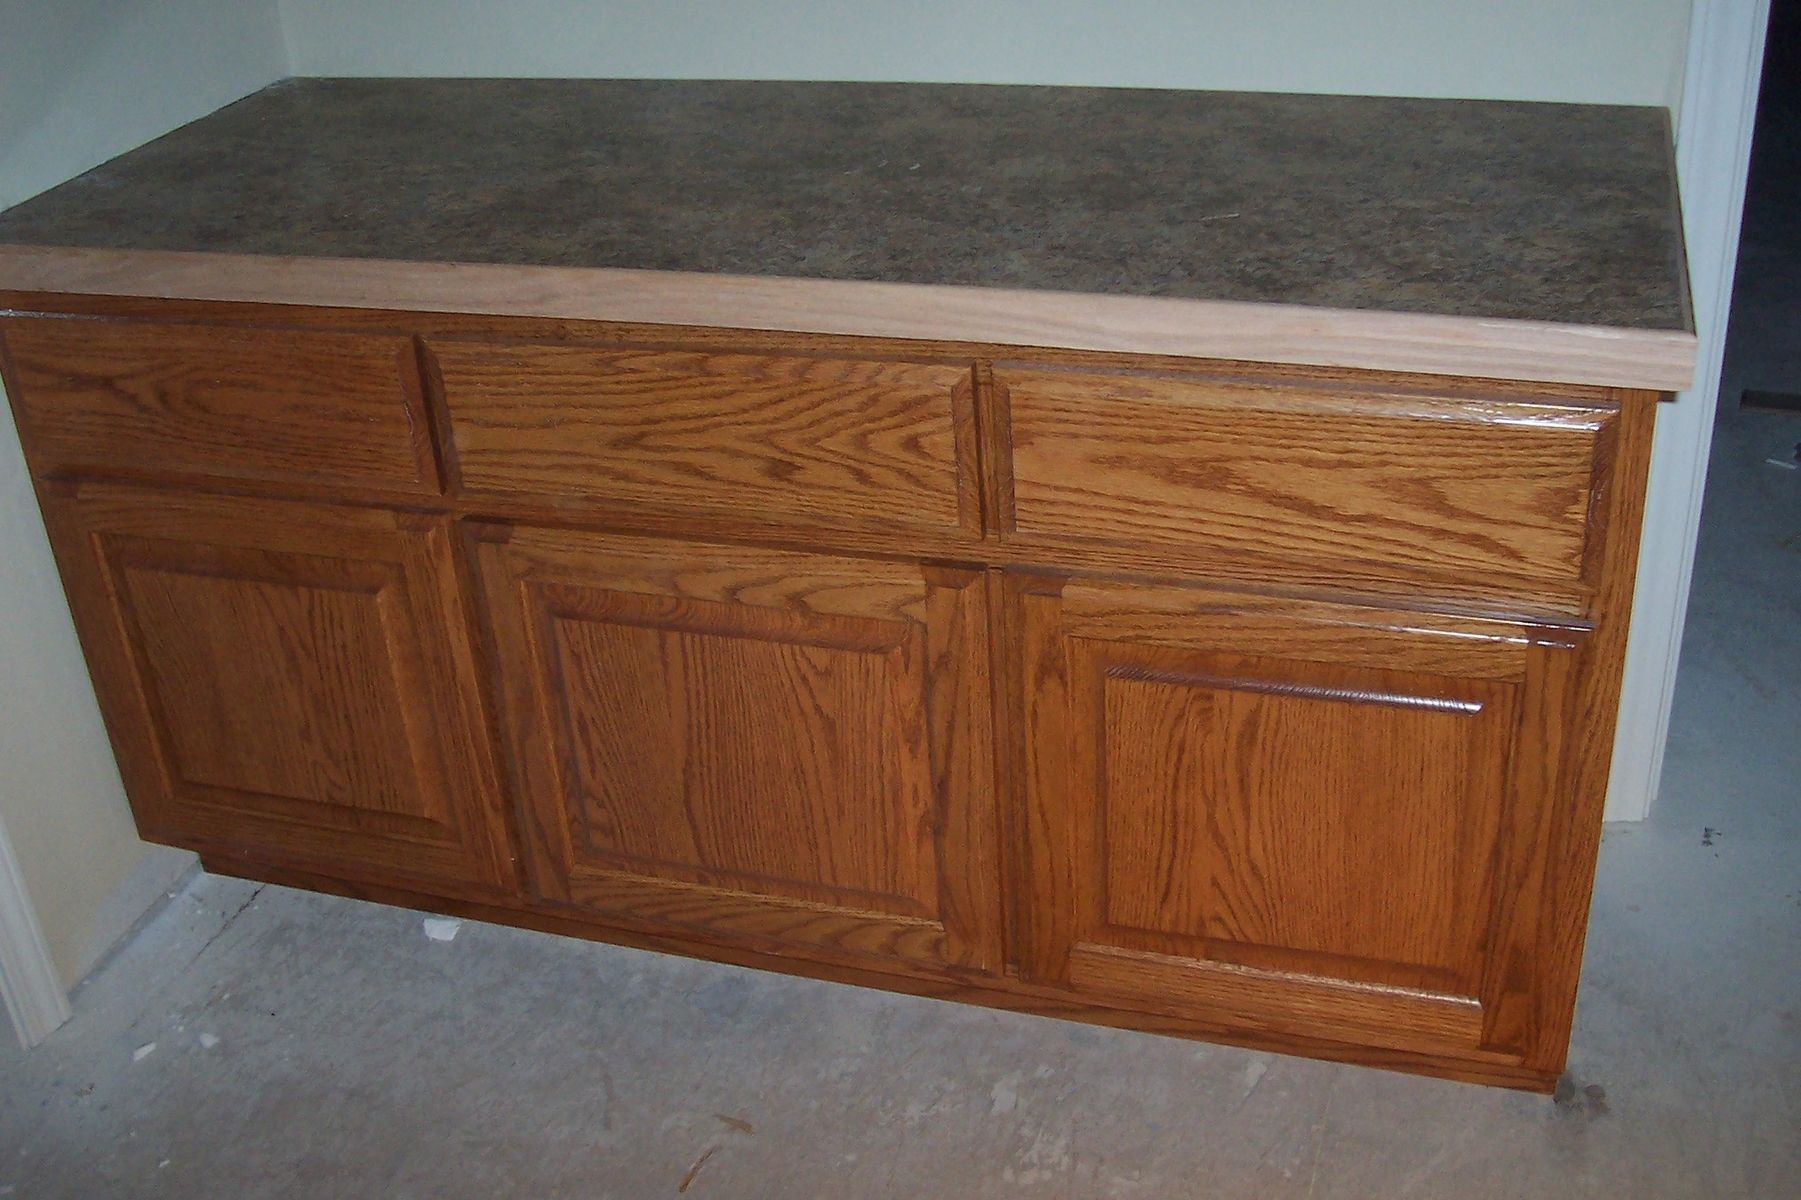 Hand crafted oak bathroom cabinet with laminate countertop for Bathroom vanity countertop cabinet